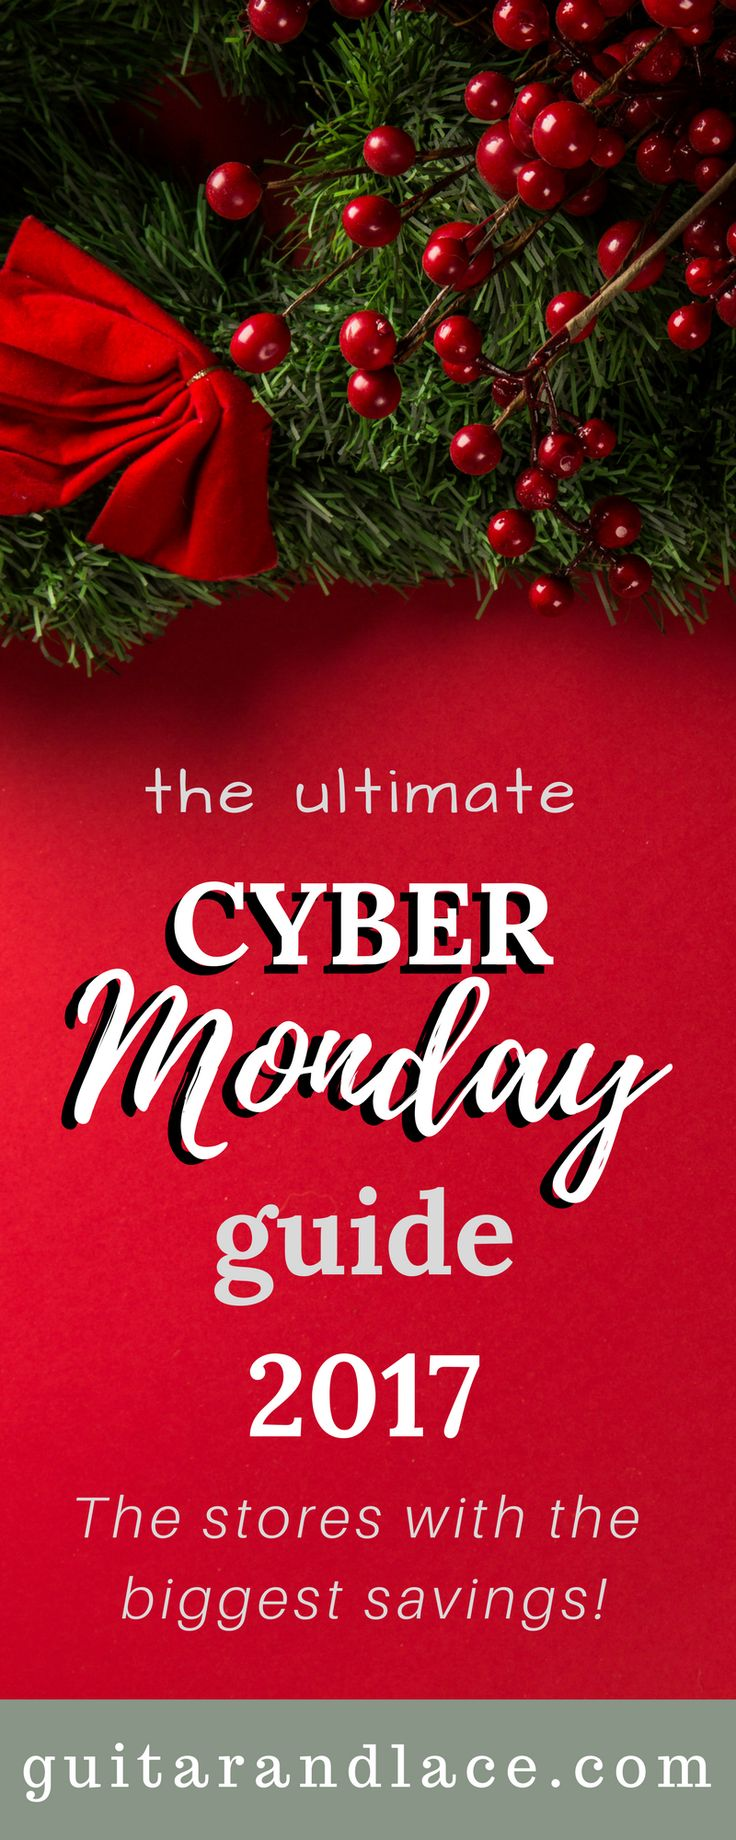 Cyber Week Deals 2017. Super savings and deals on gifts for everyone. Diamonds, electronics, fashion, shoes, video games, home decor, kitchen